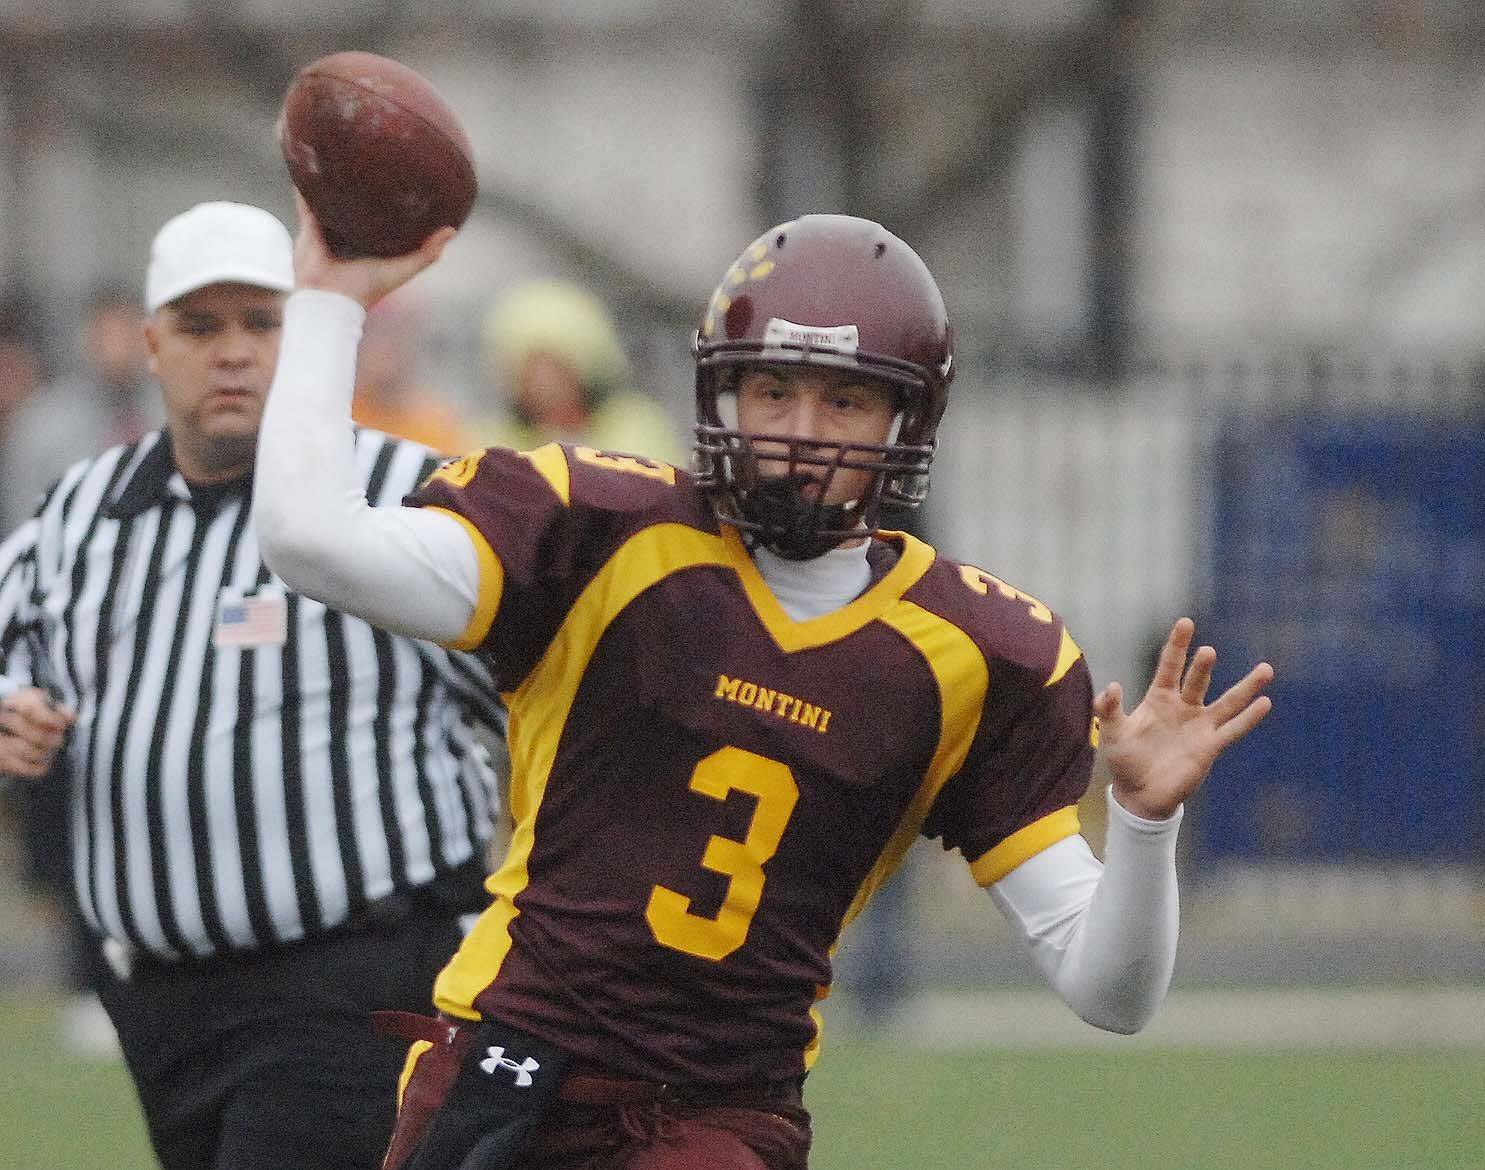 Matt Westerkamp of Montini fires one during the Marian Central vs. Montini game in Elmhurst Saturday.